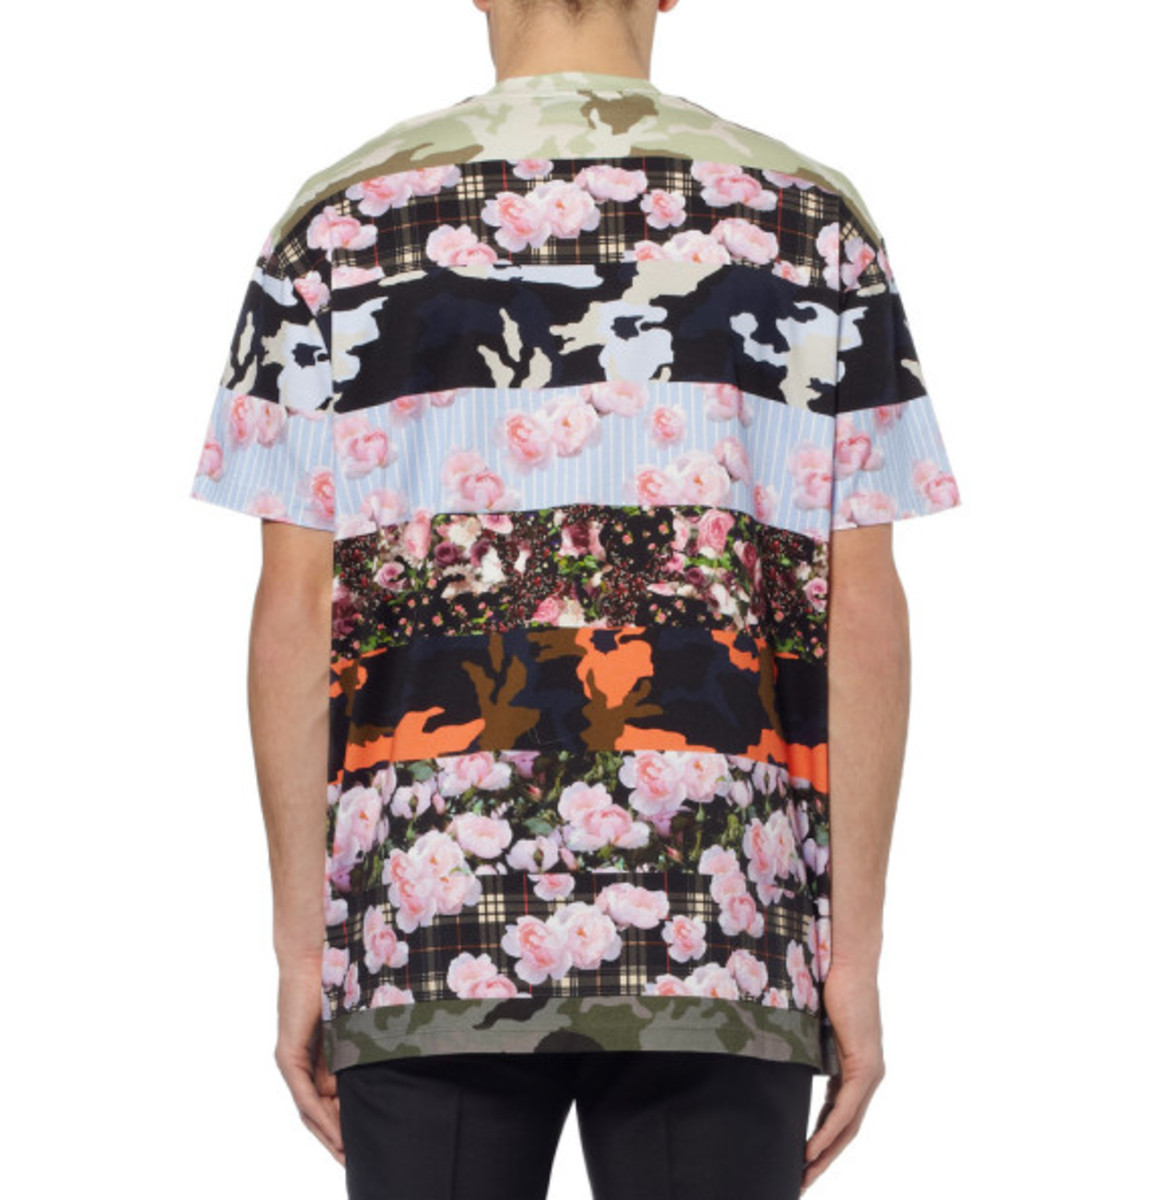 givenchy-oversized-panelled-t-shirt-06